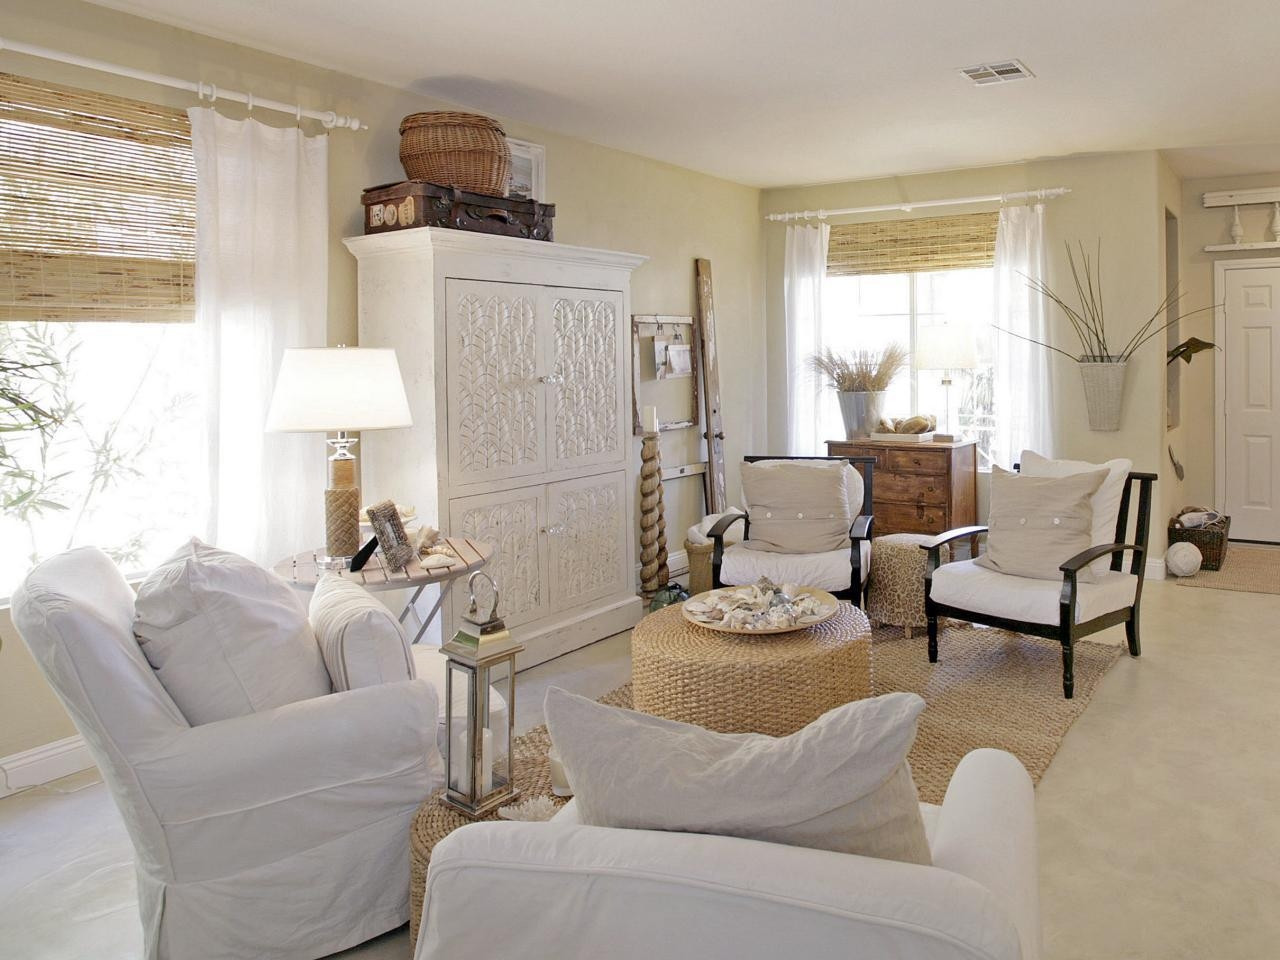 Cottage Style Sofas Living Room Furniture   Tehranmix Decoration For Cottage Style Sofas And Chairs (View 18 of 20)